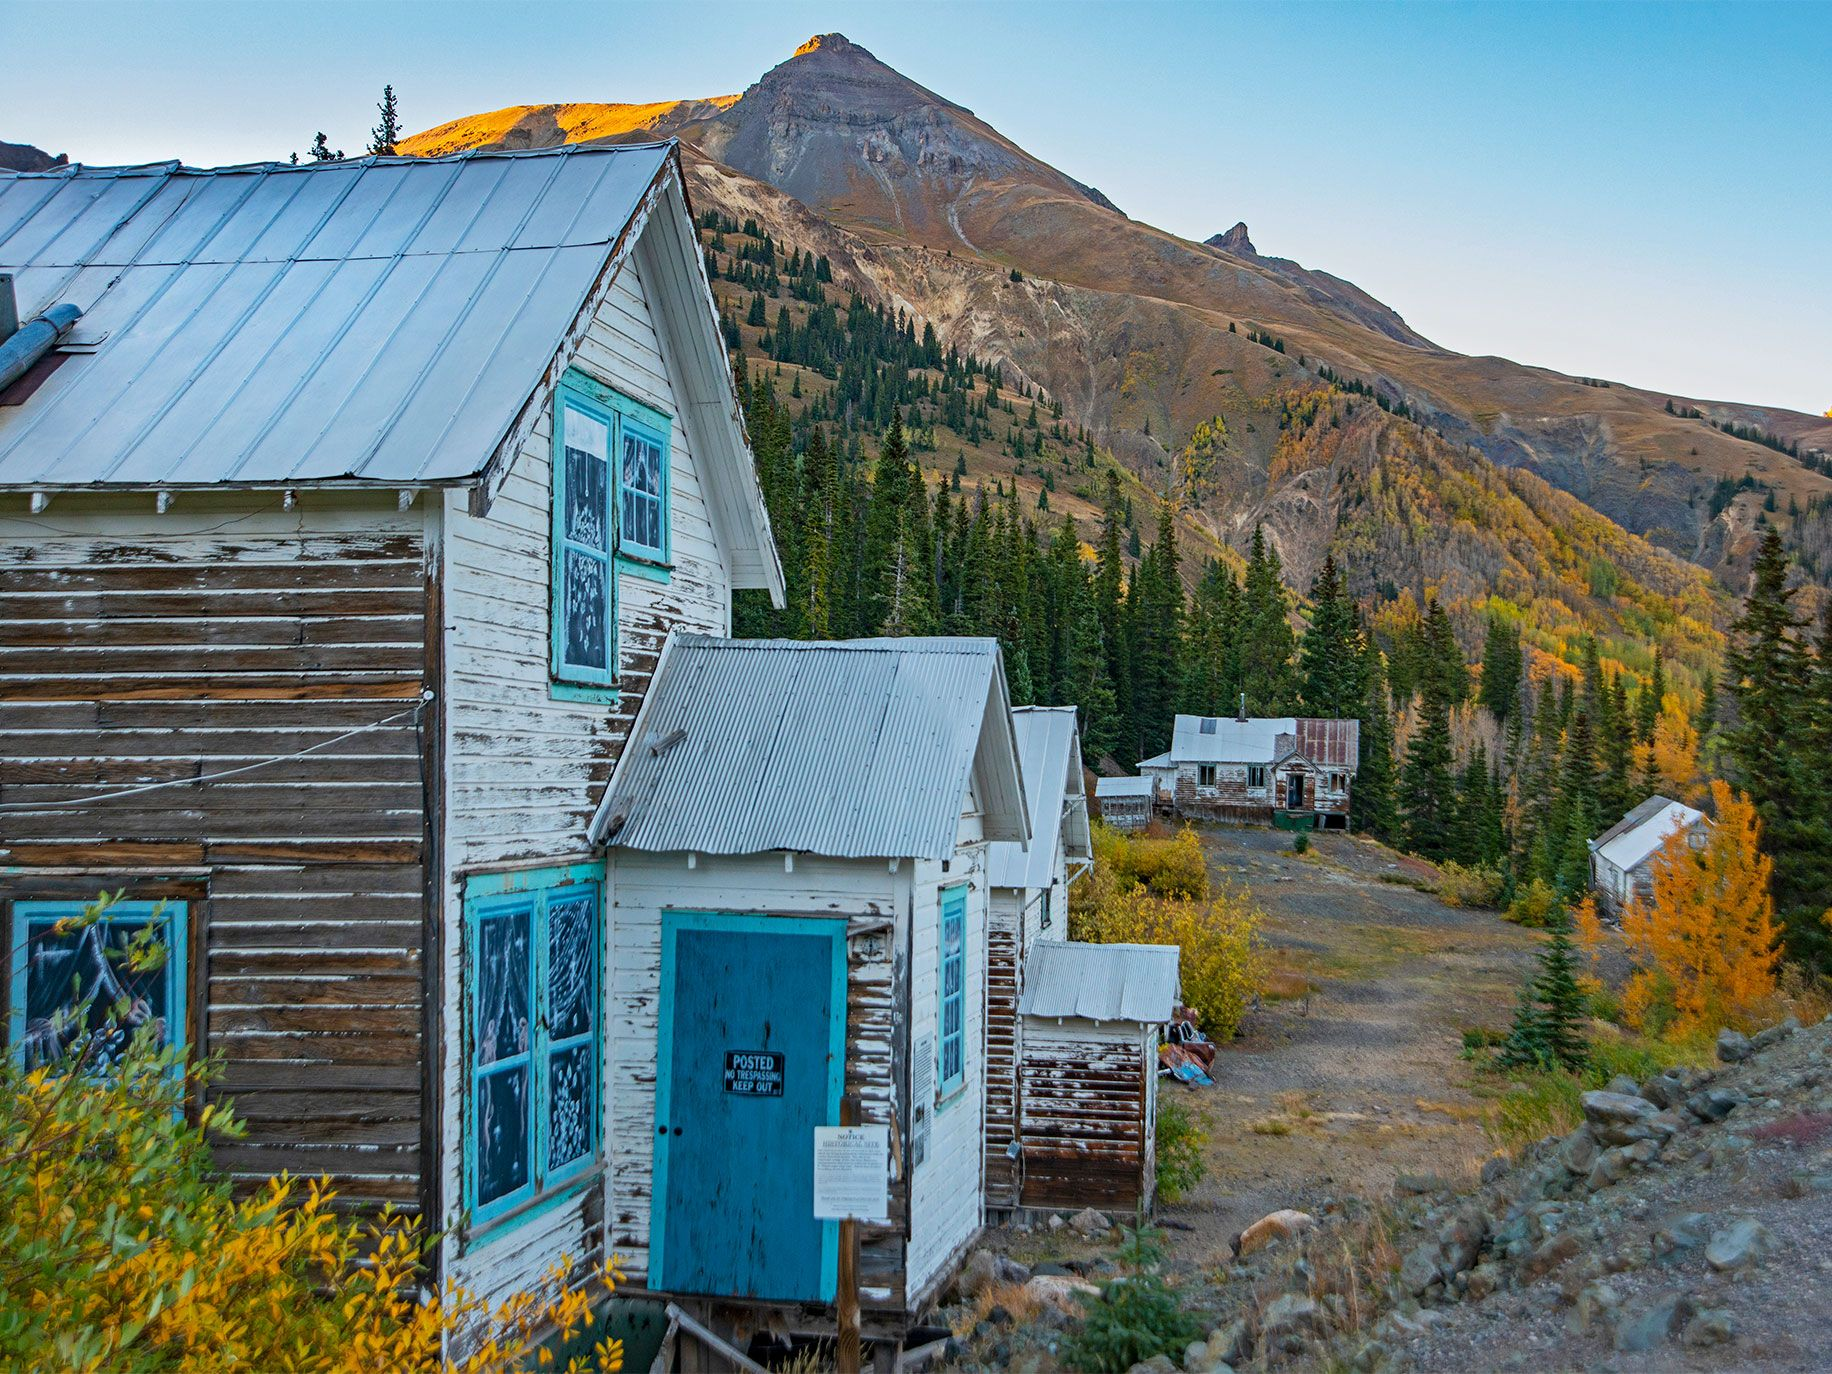 Century-old houses stand empty at the former Idarado Mine, near Silverton, Colorado. The homes were moved here in 1948 from Eureka, a nearby ghost town.